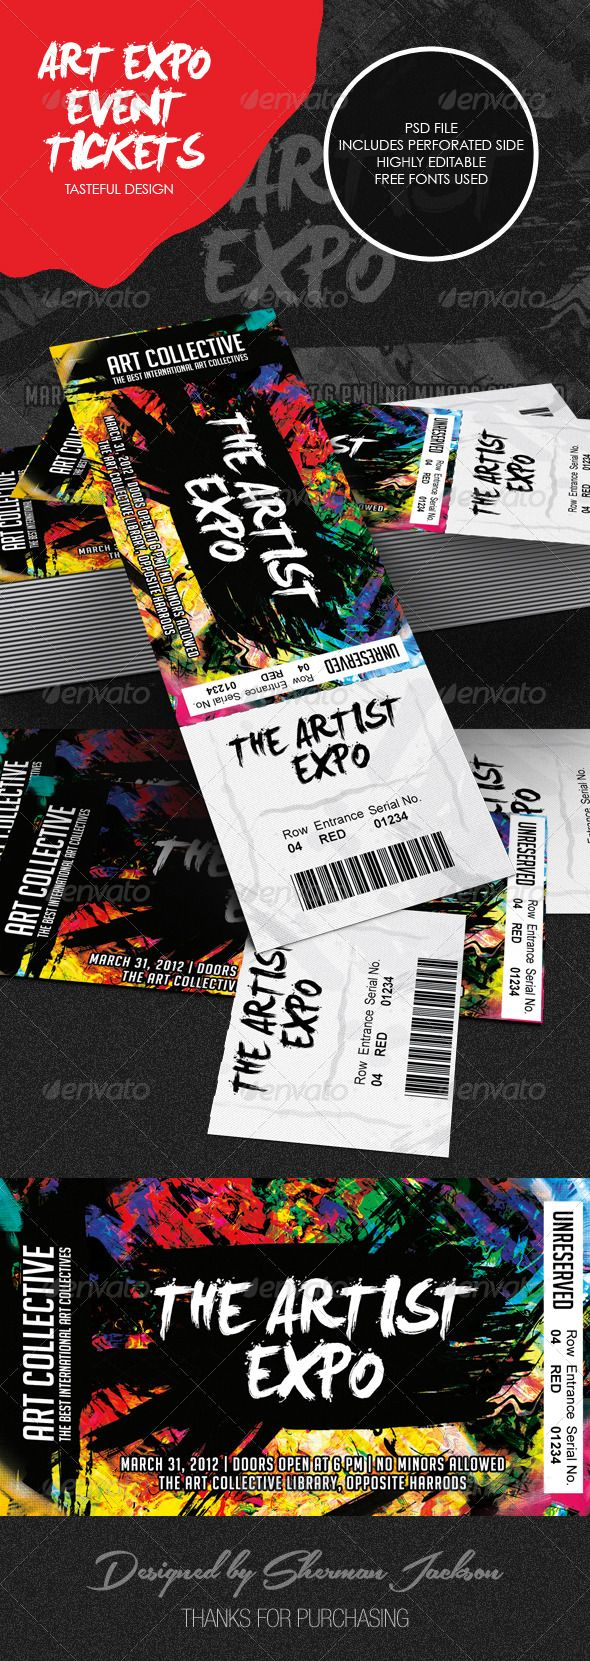 Concert Ticket Template Free Download Best 14 Best Layoutstext And Images Images On Pinterest  Brochures .